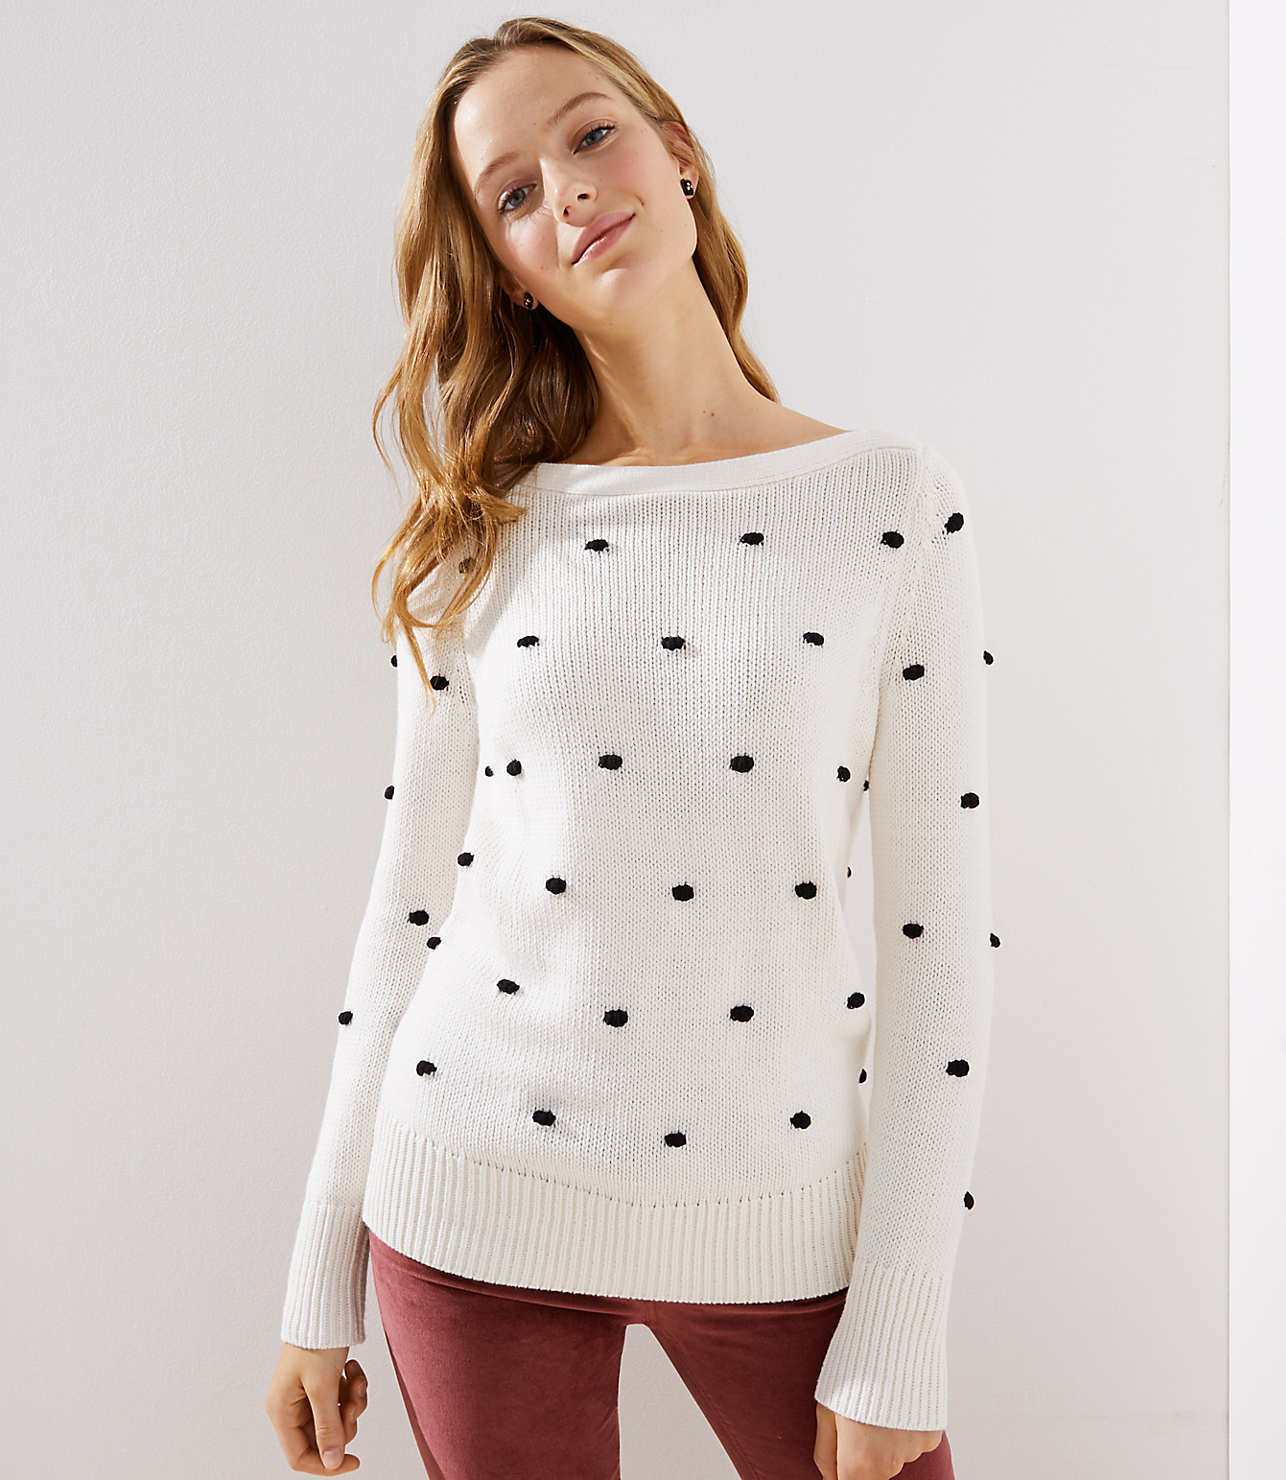 Bobble Stitch Sweater - so cute for the winter months!